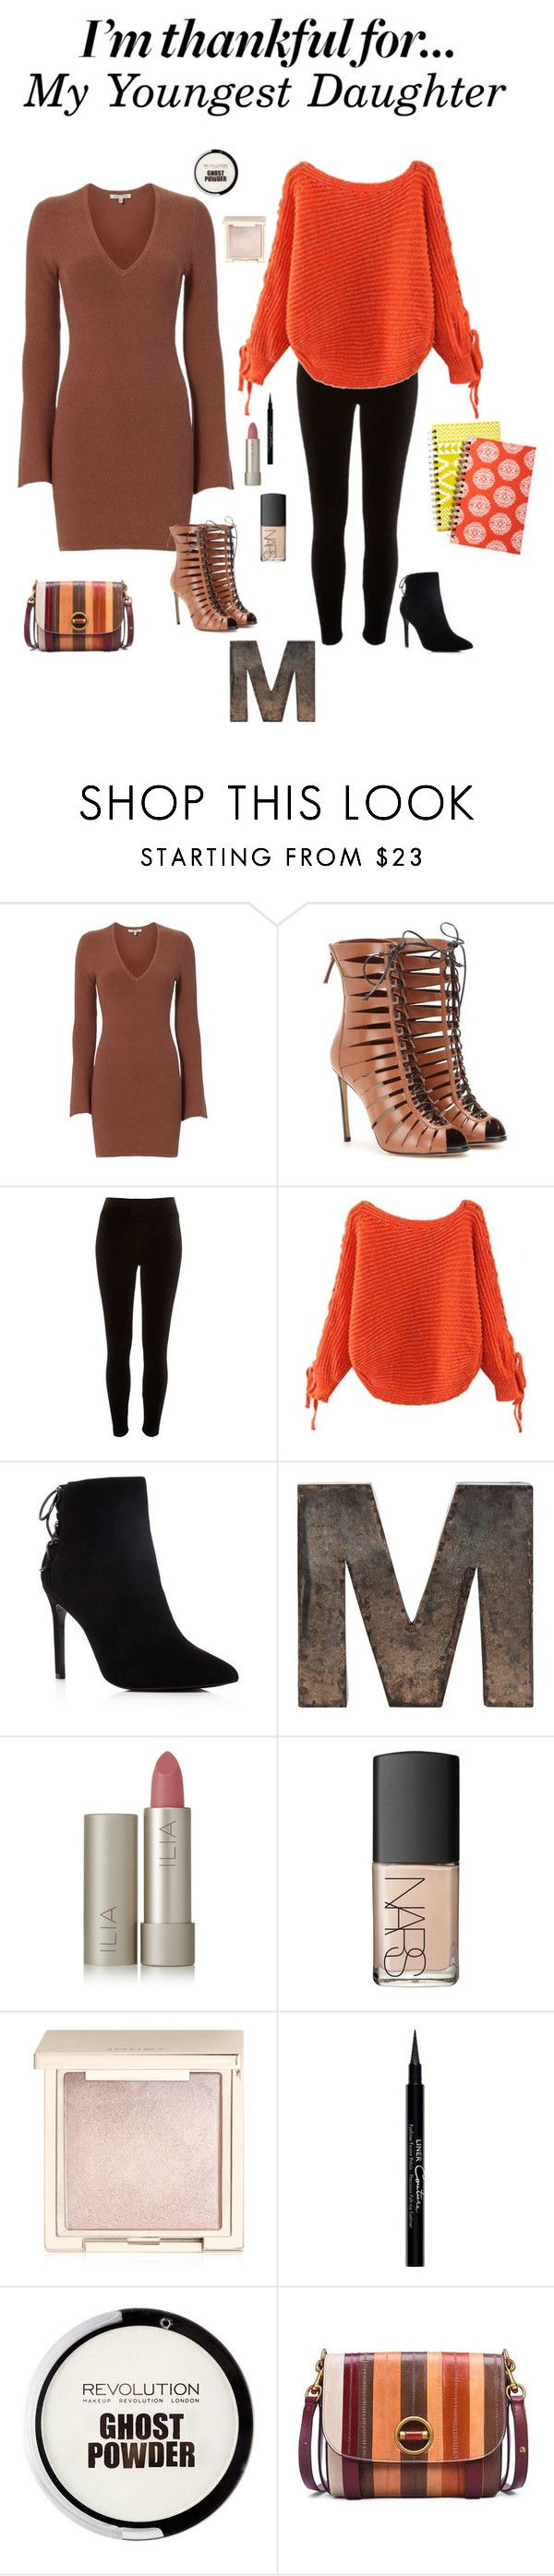 """""""M - the busiest 17 year old I know"""" by stacy-hardy ❤ liked on Polyvore featuring Torn by Ronny Kobo, Francesco Russo, River Island, Charles David, Urban Trends Collection, Ilia, NARS Cosmetics, Jouer, Givenchy and Tory Burch"""